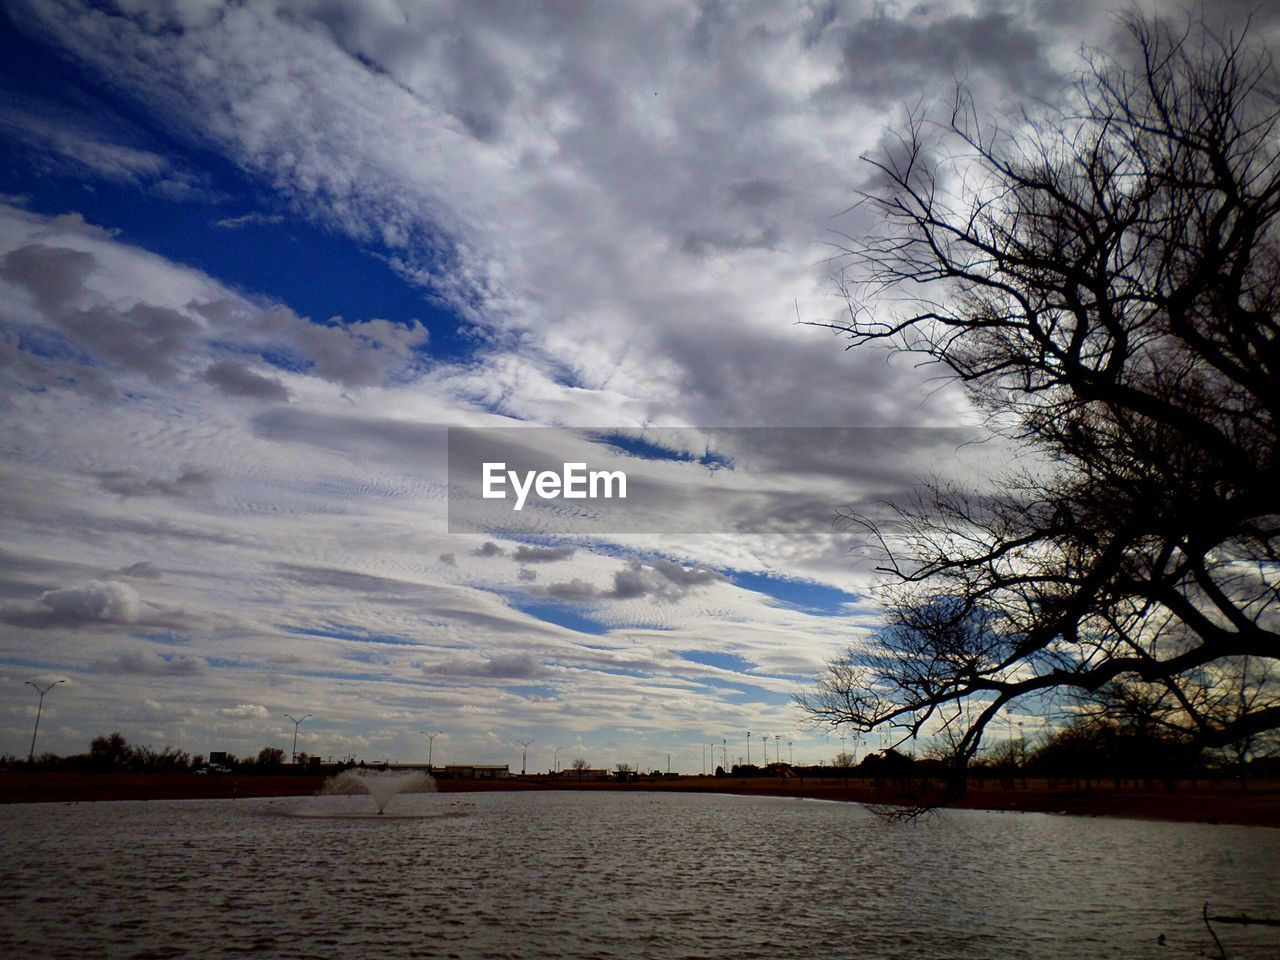 sky, cloud - sky, water, no people, tranquility, tranquil scene, tree, scenics, nature, lake, beauty in nature, outdoors, day